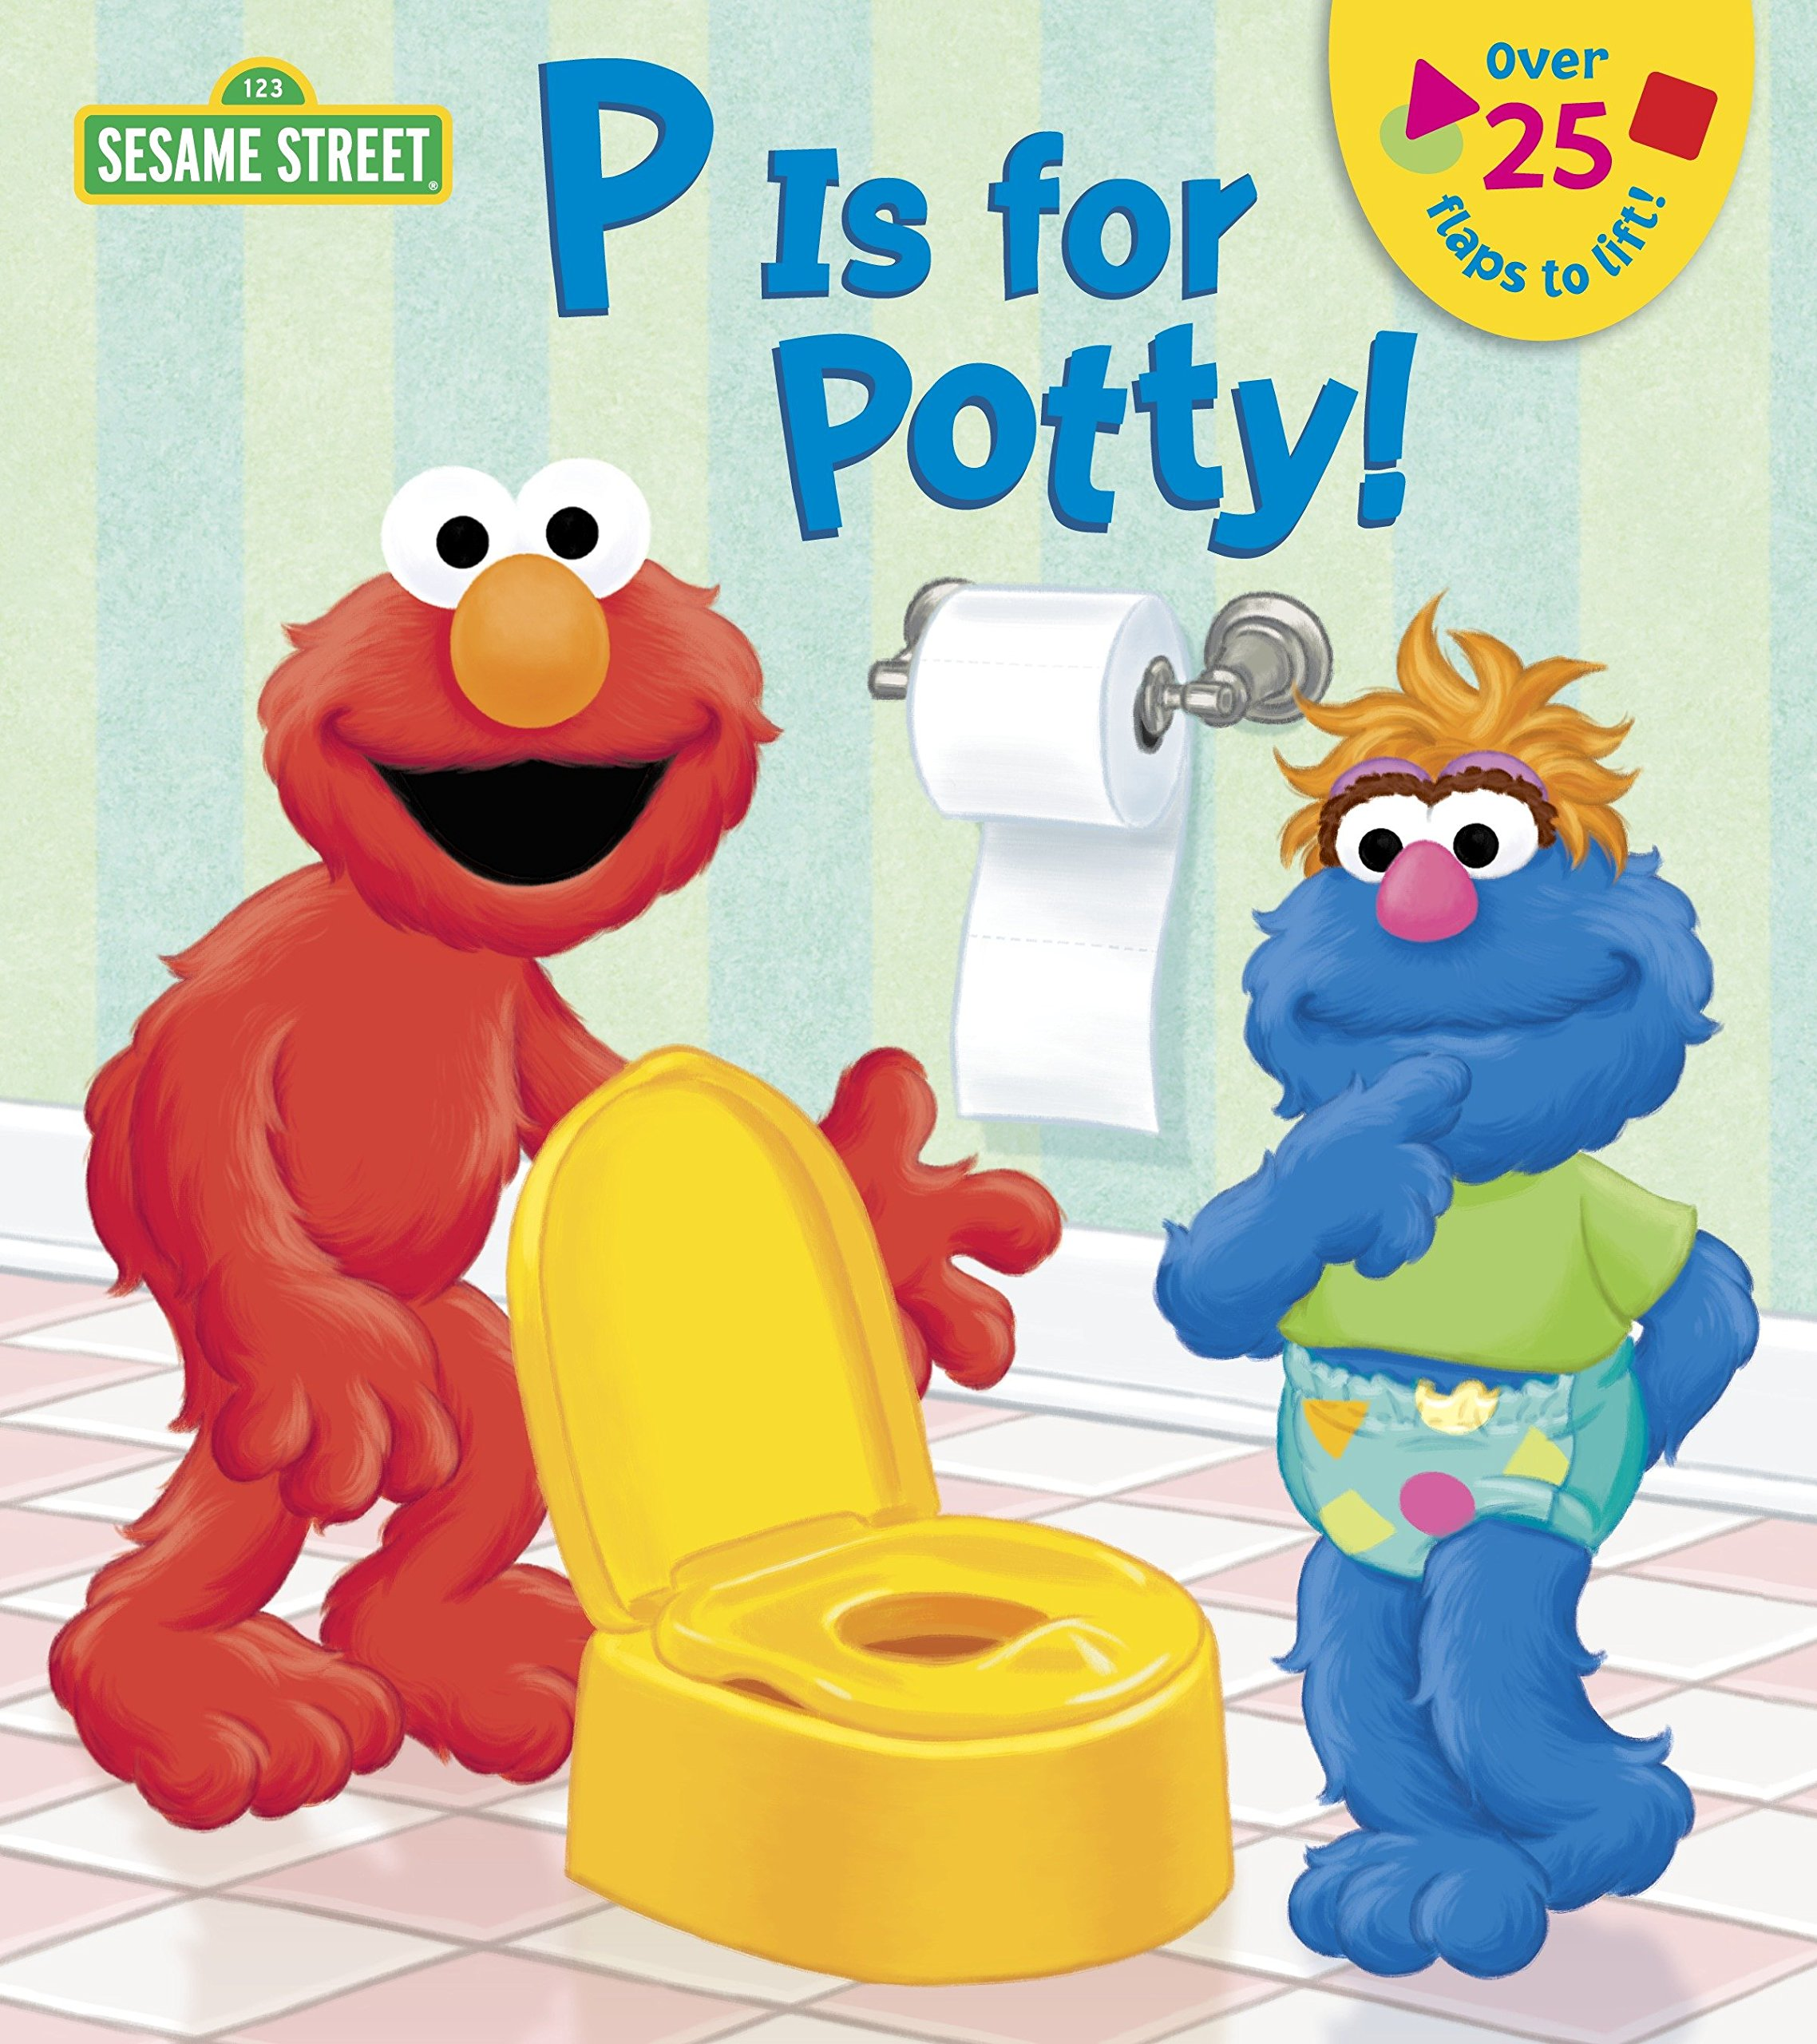 p.is.for.potty.shegotguts.jpg